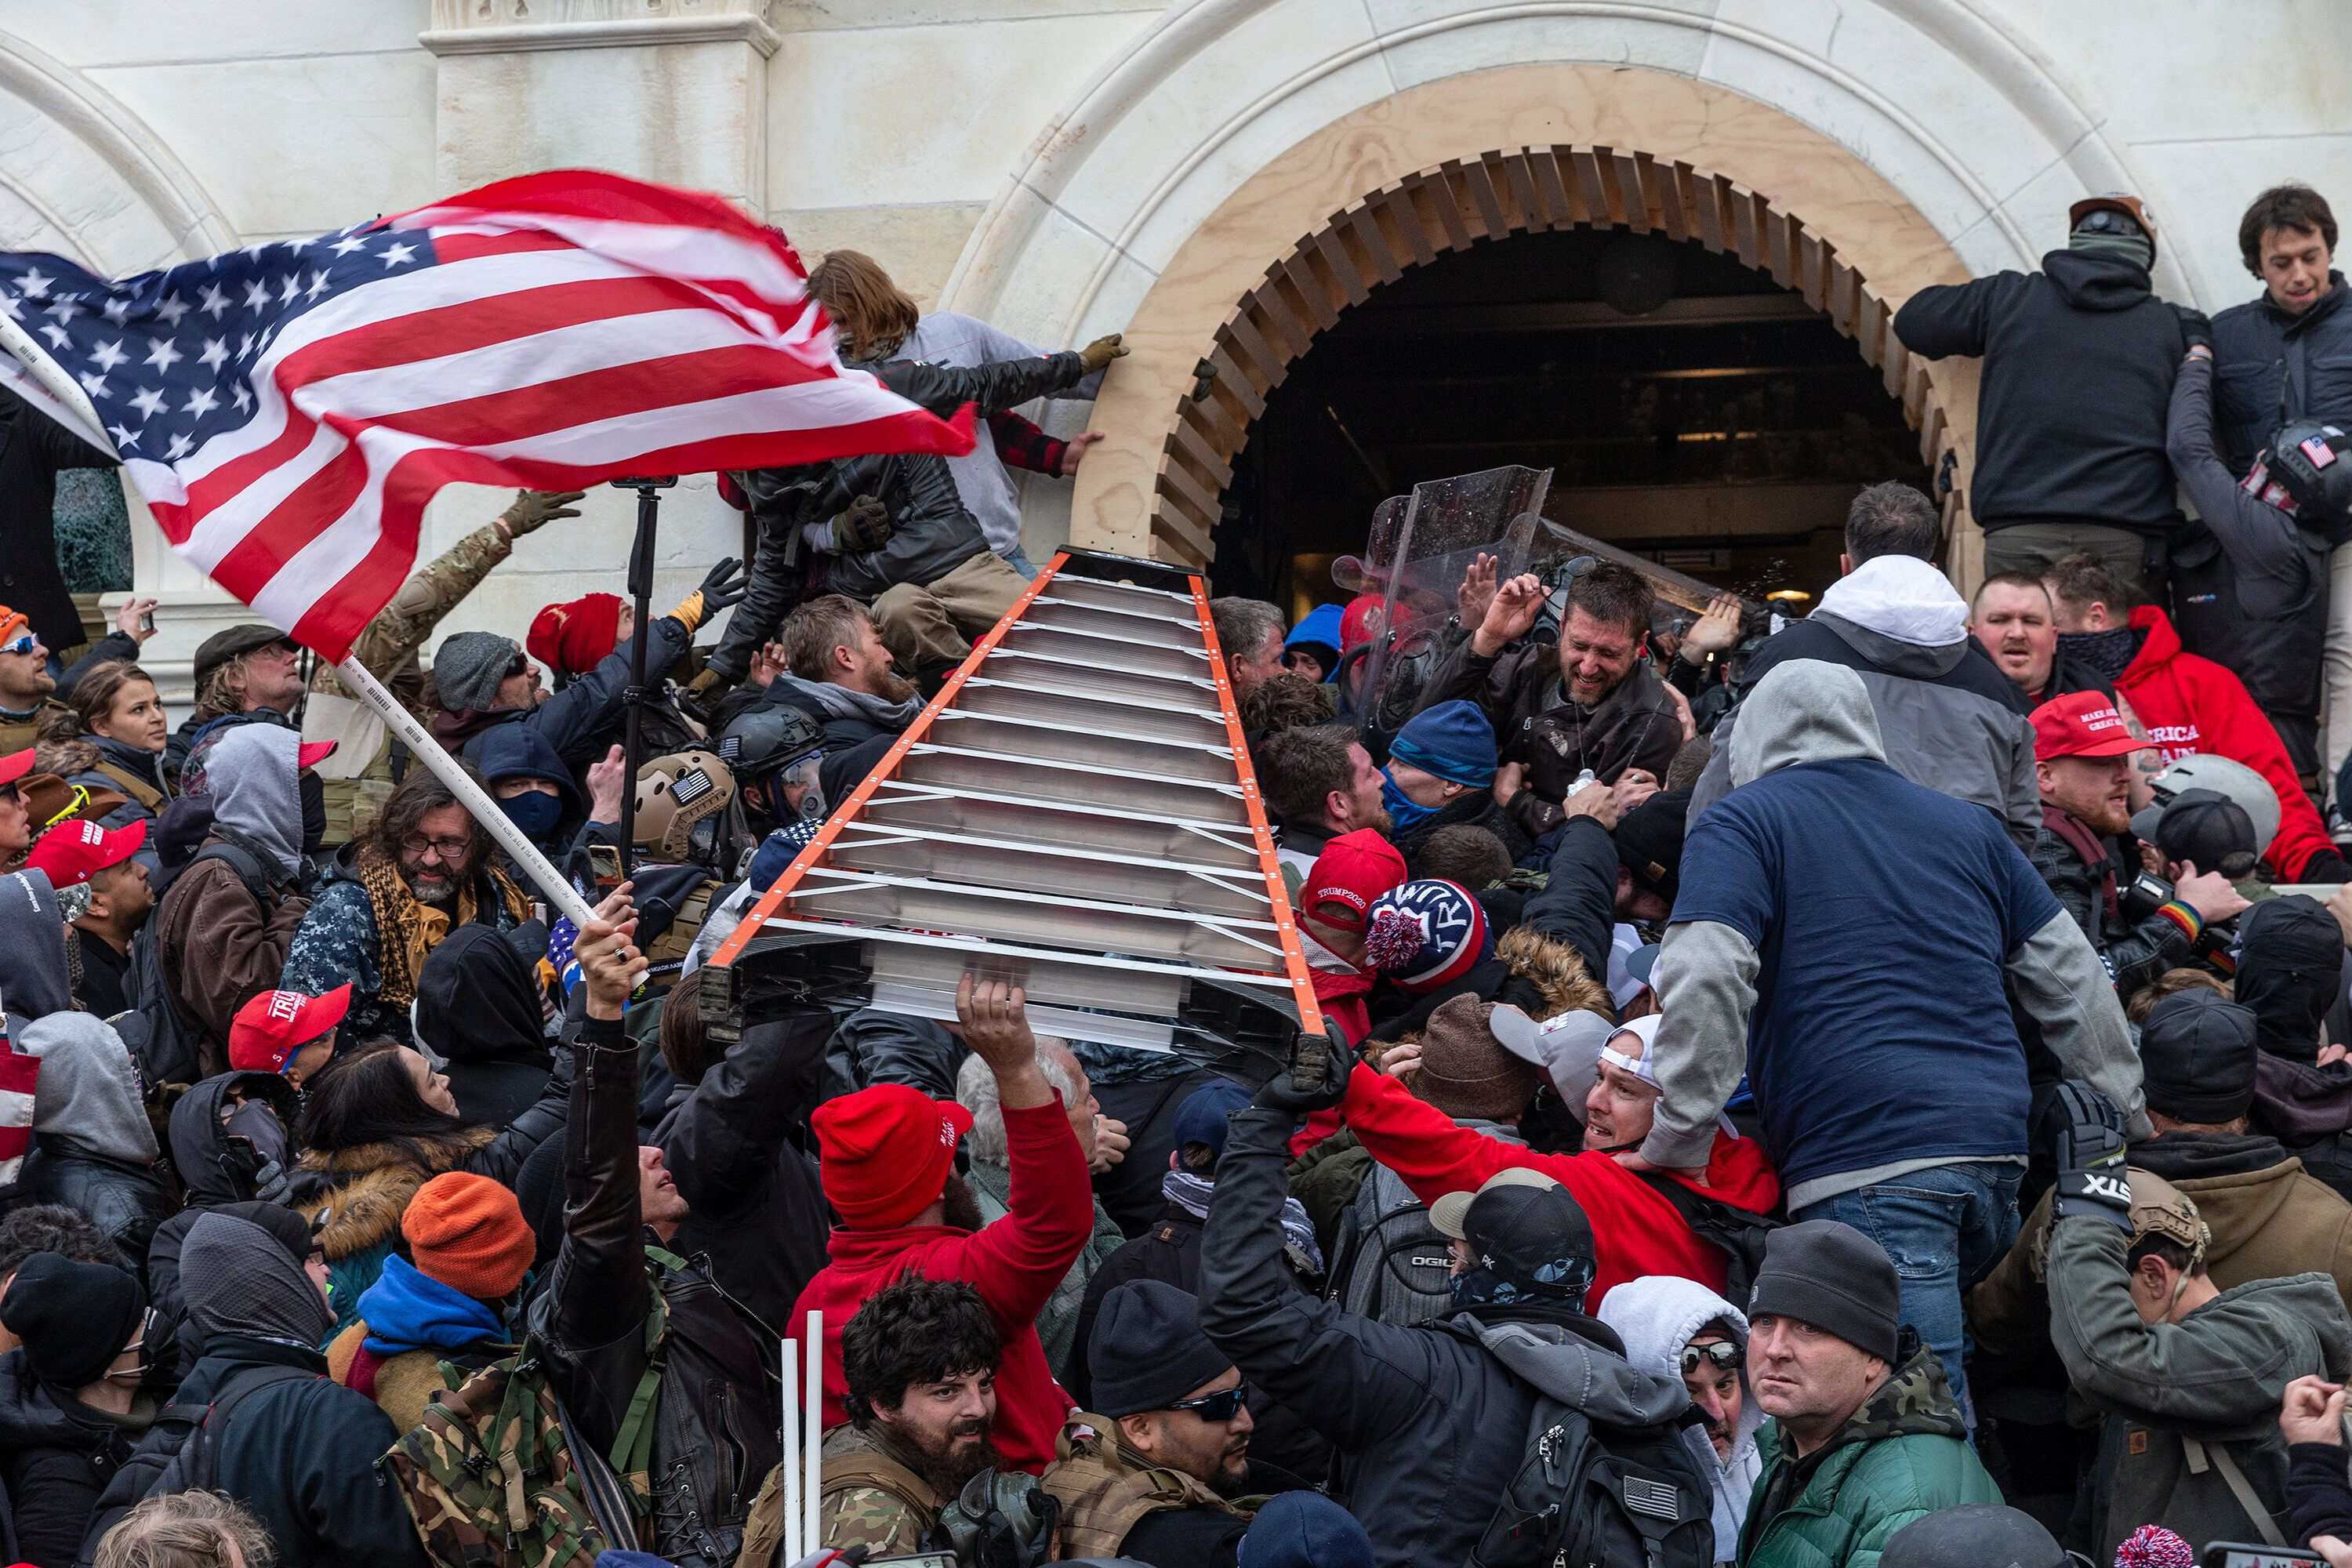 Rioters on clash with police while trying to enter the Capitol building on Jan. 6.